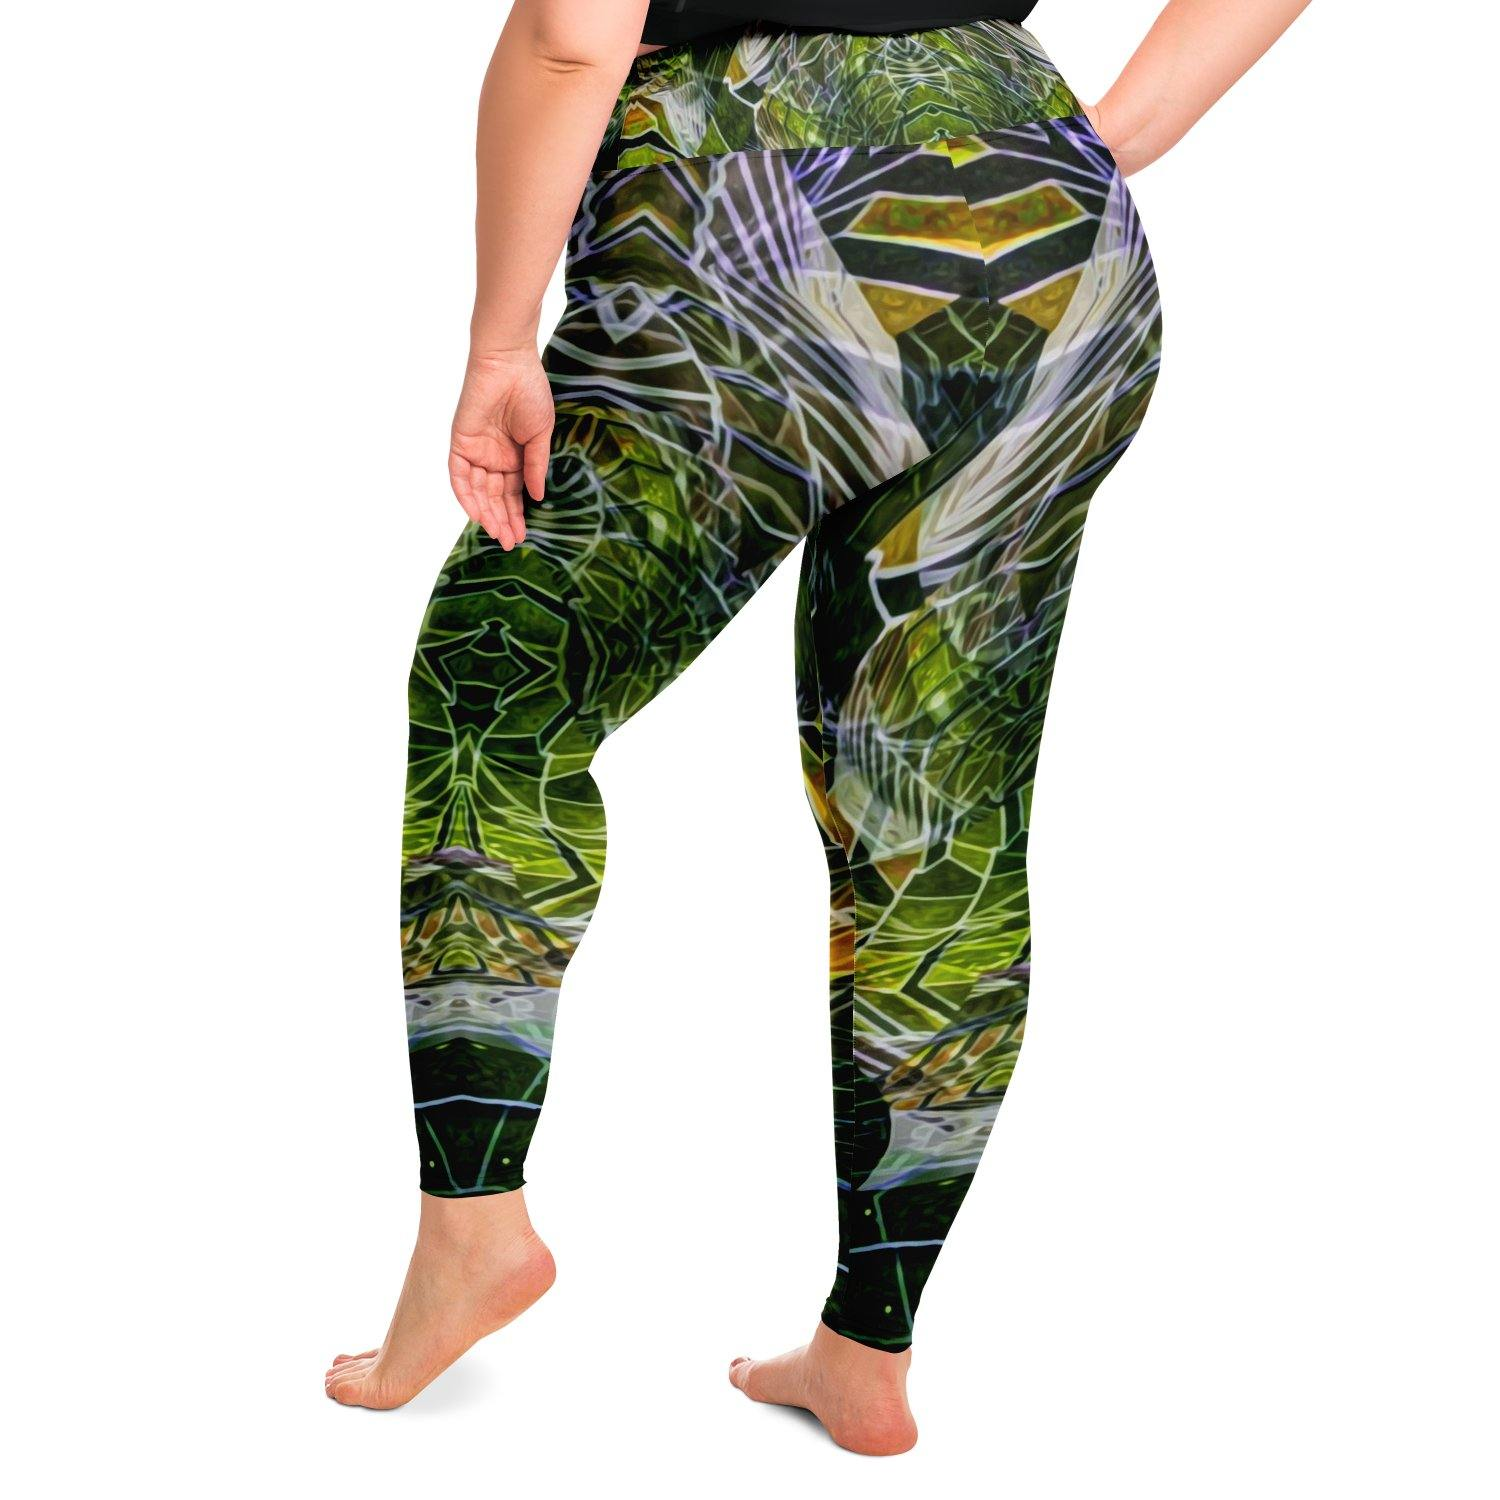 Cosmic Slither Premium Plus Size Yoga Leggings - Manifestie